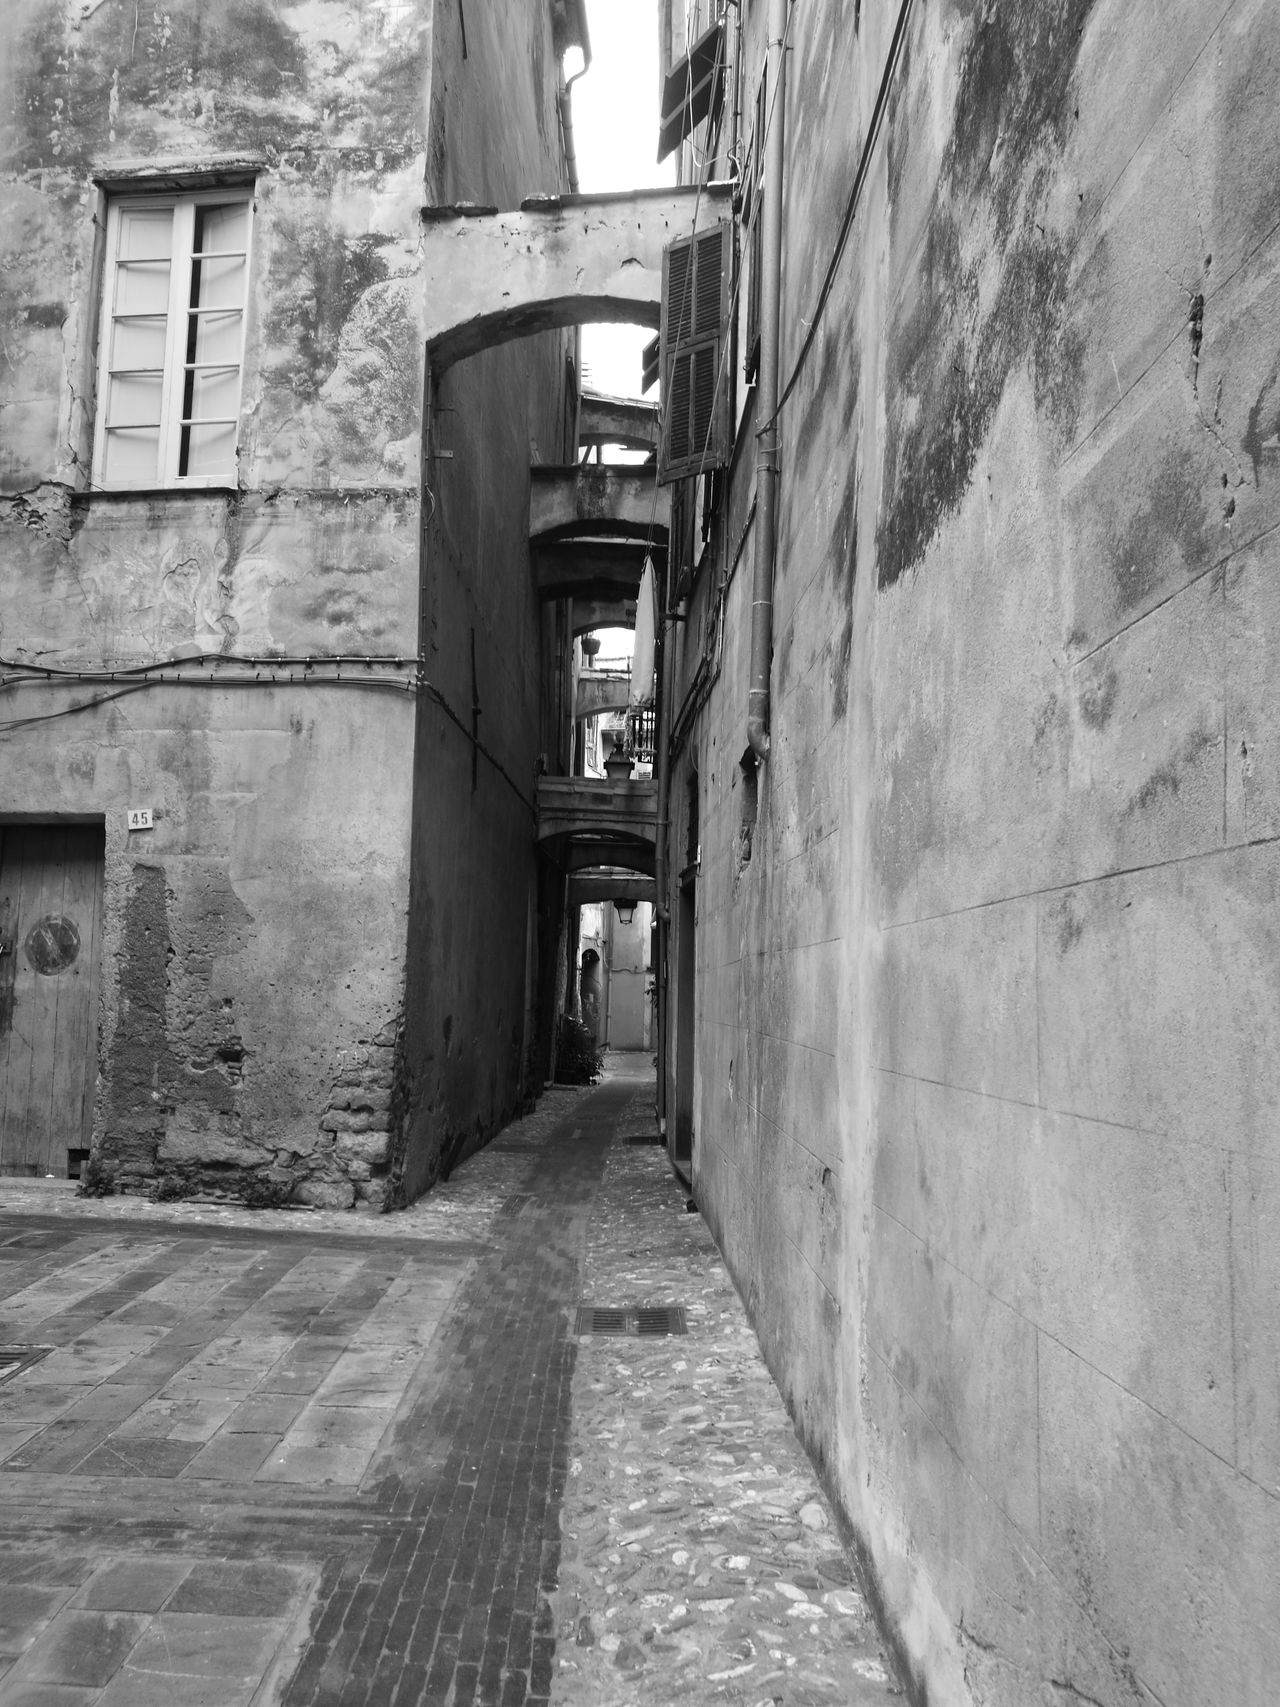 Architecture Built Structure The Way Forward City No People Building Exterior Day Outdoors Albenga Italy🇮🇹 Historical Building Center City